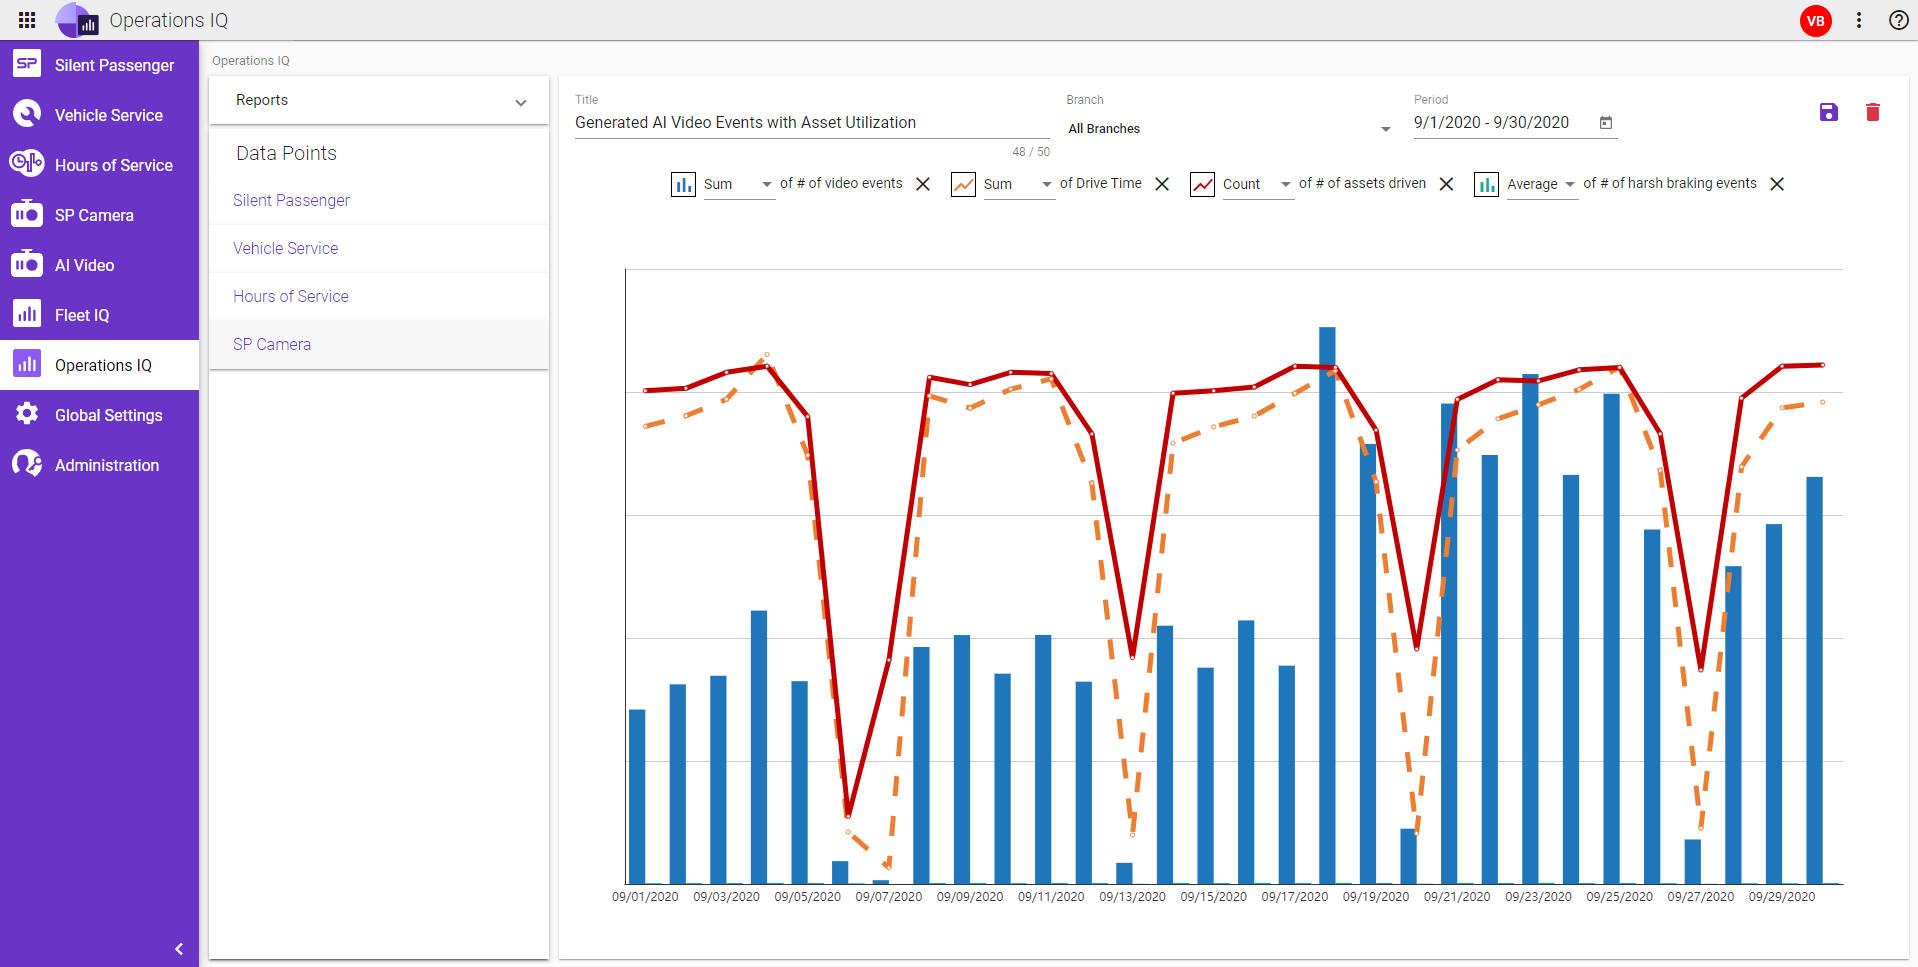 Operations IQ combines all data into custom reports and dashboards